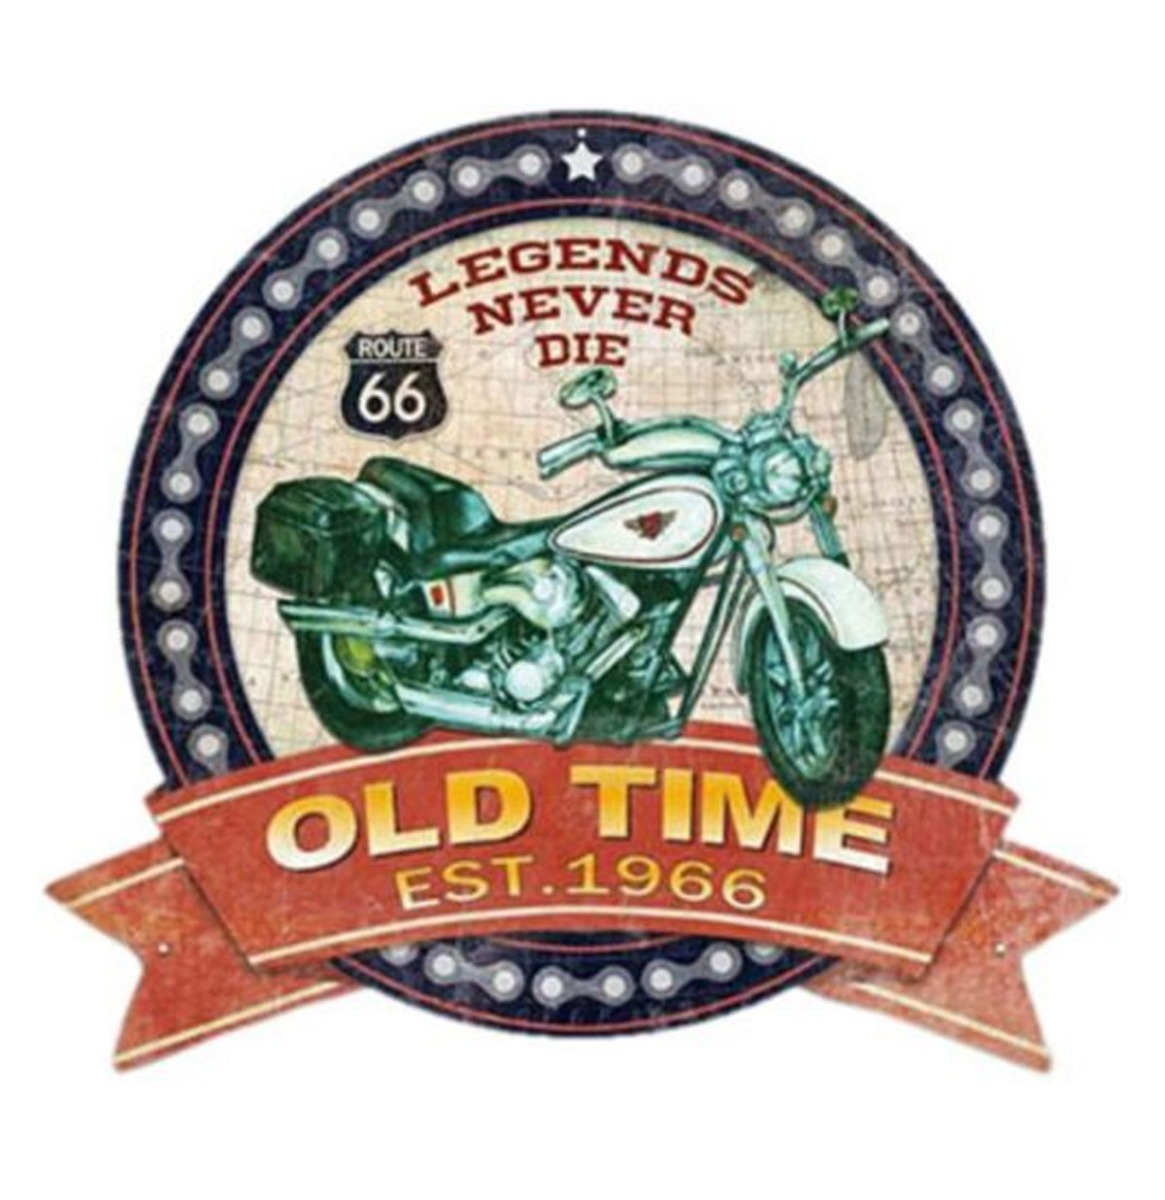 Route 66 Legends Never Die Old Time Cut Out Metalen Bord 39 x 35 cm